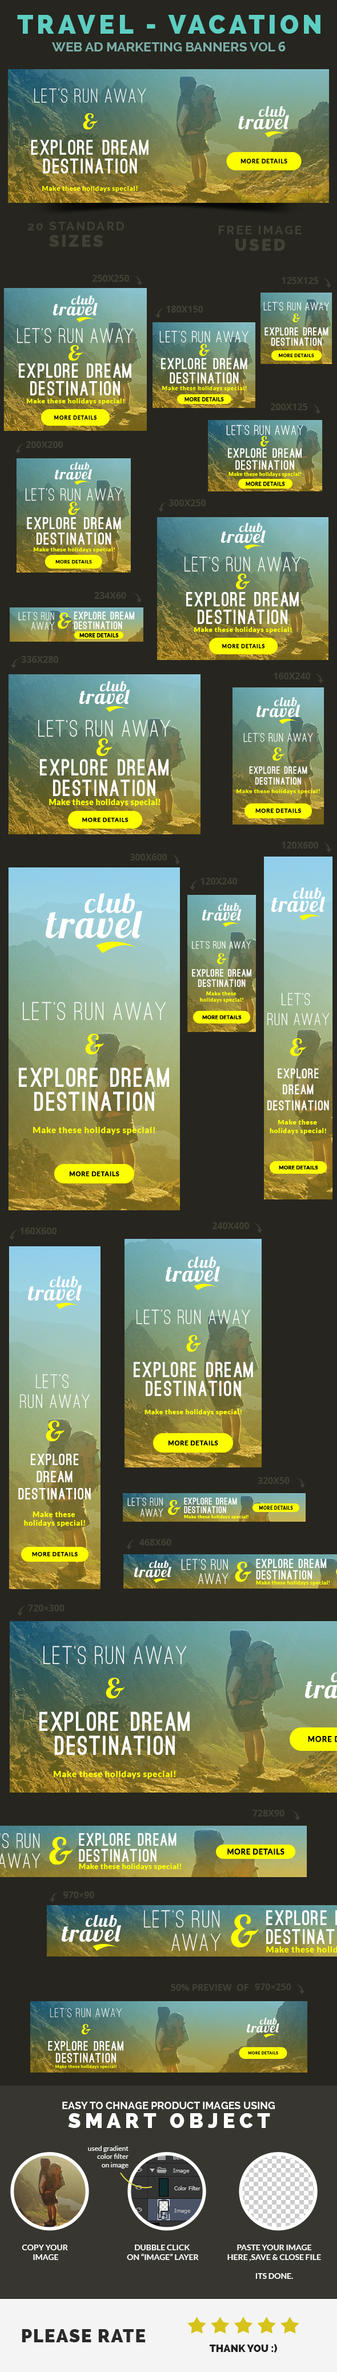 Travel - Vacation Web Ad Marketing Banners Vol 6 by webduckdesign